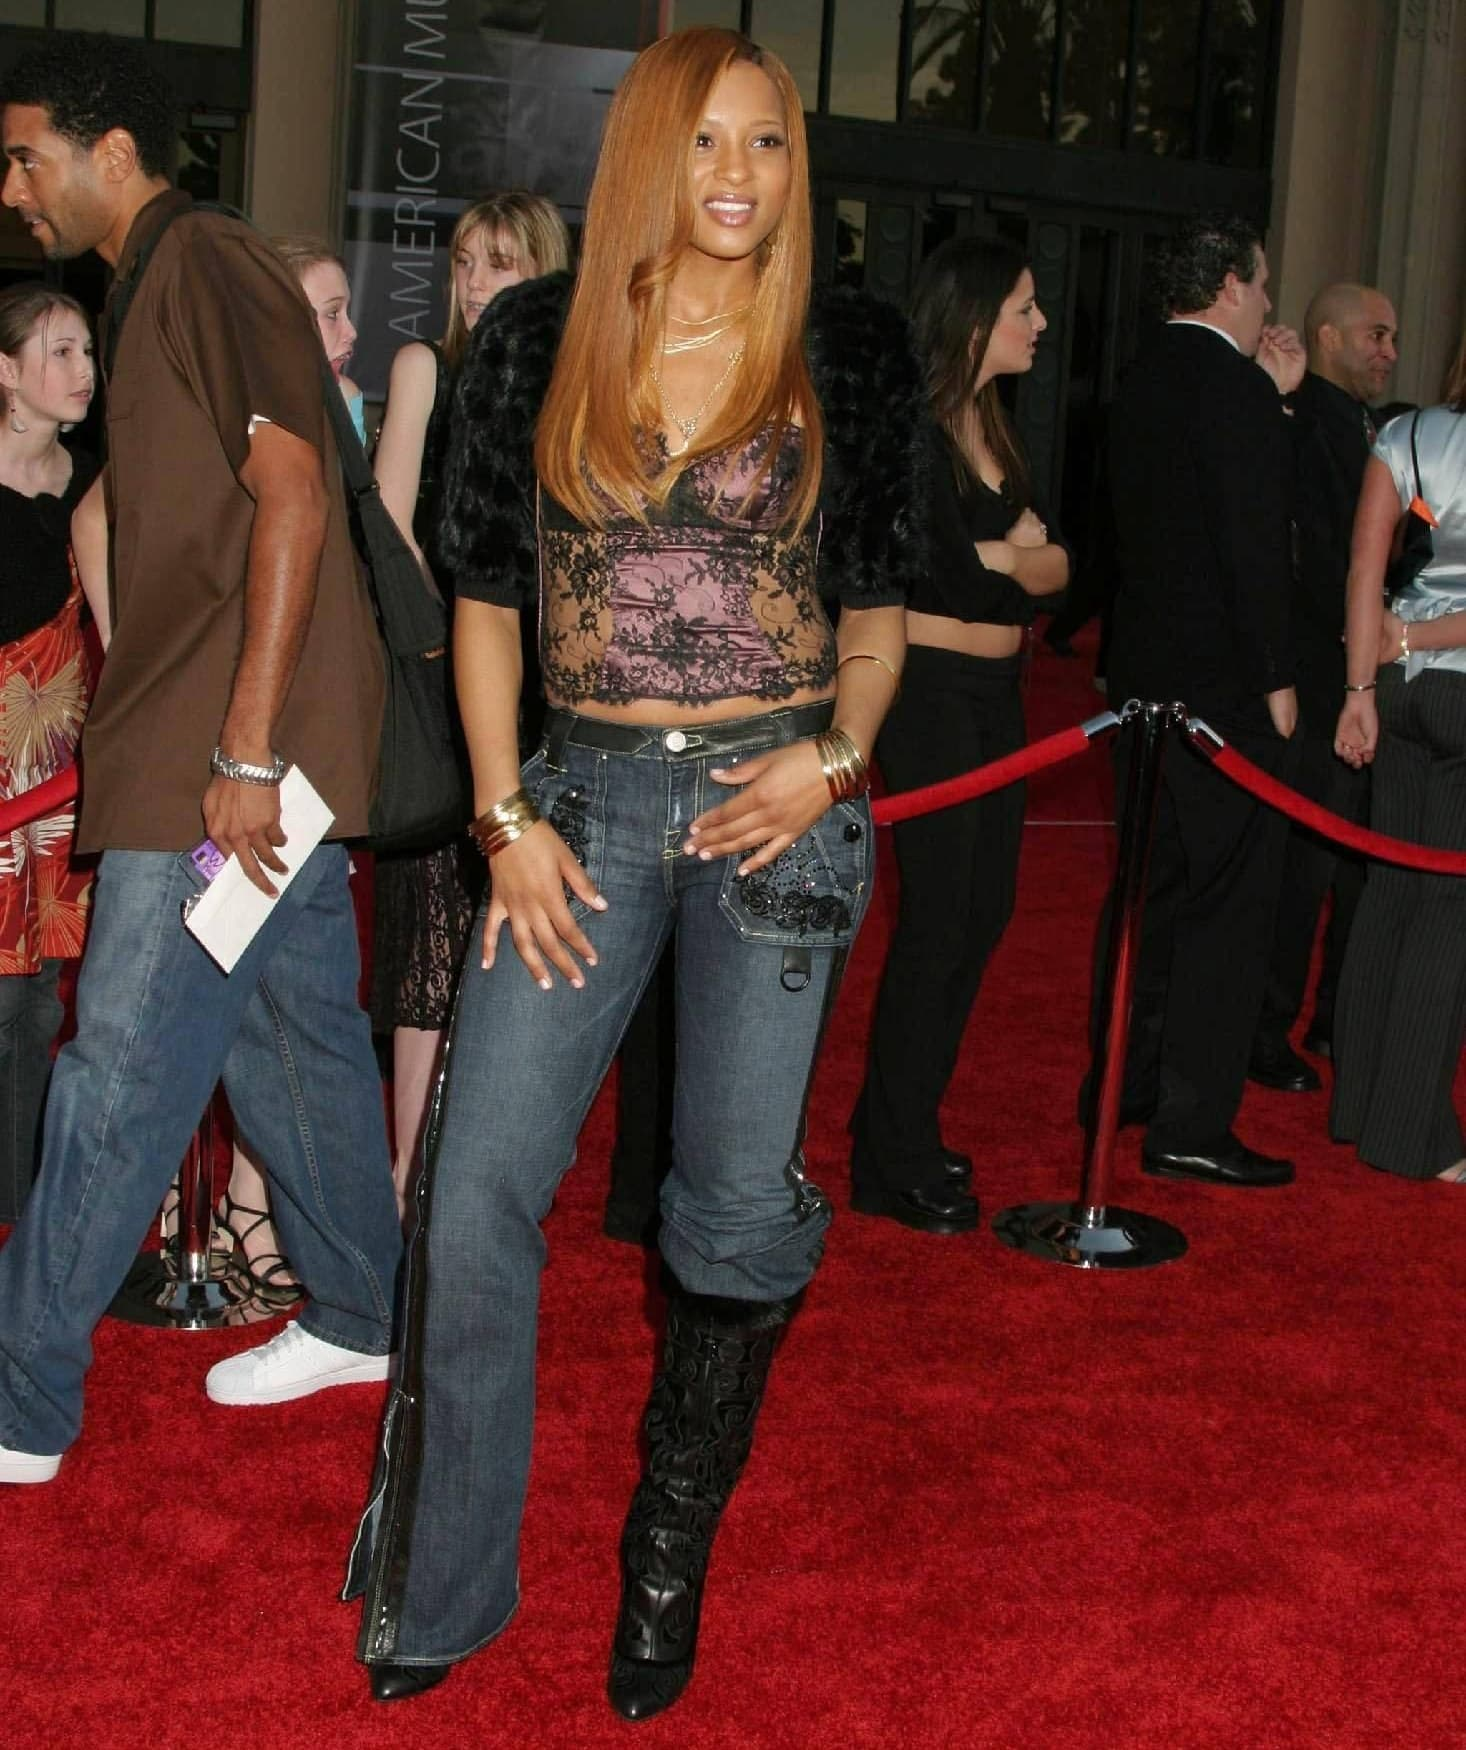 Ciara celebrates the release of her first album Goodies at the 32nd Annual American Music Awards